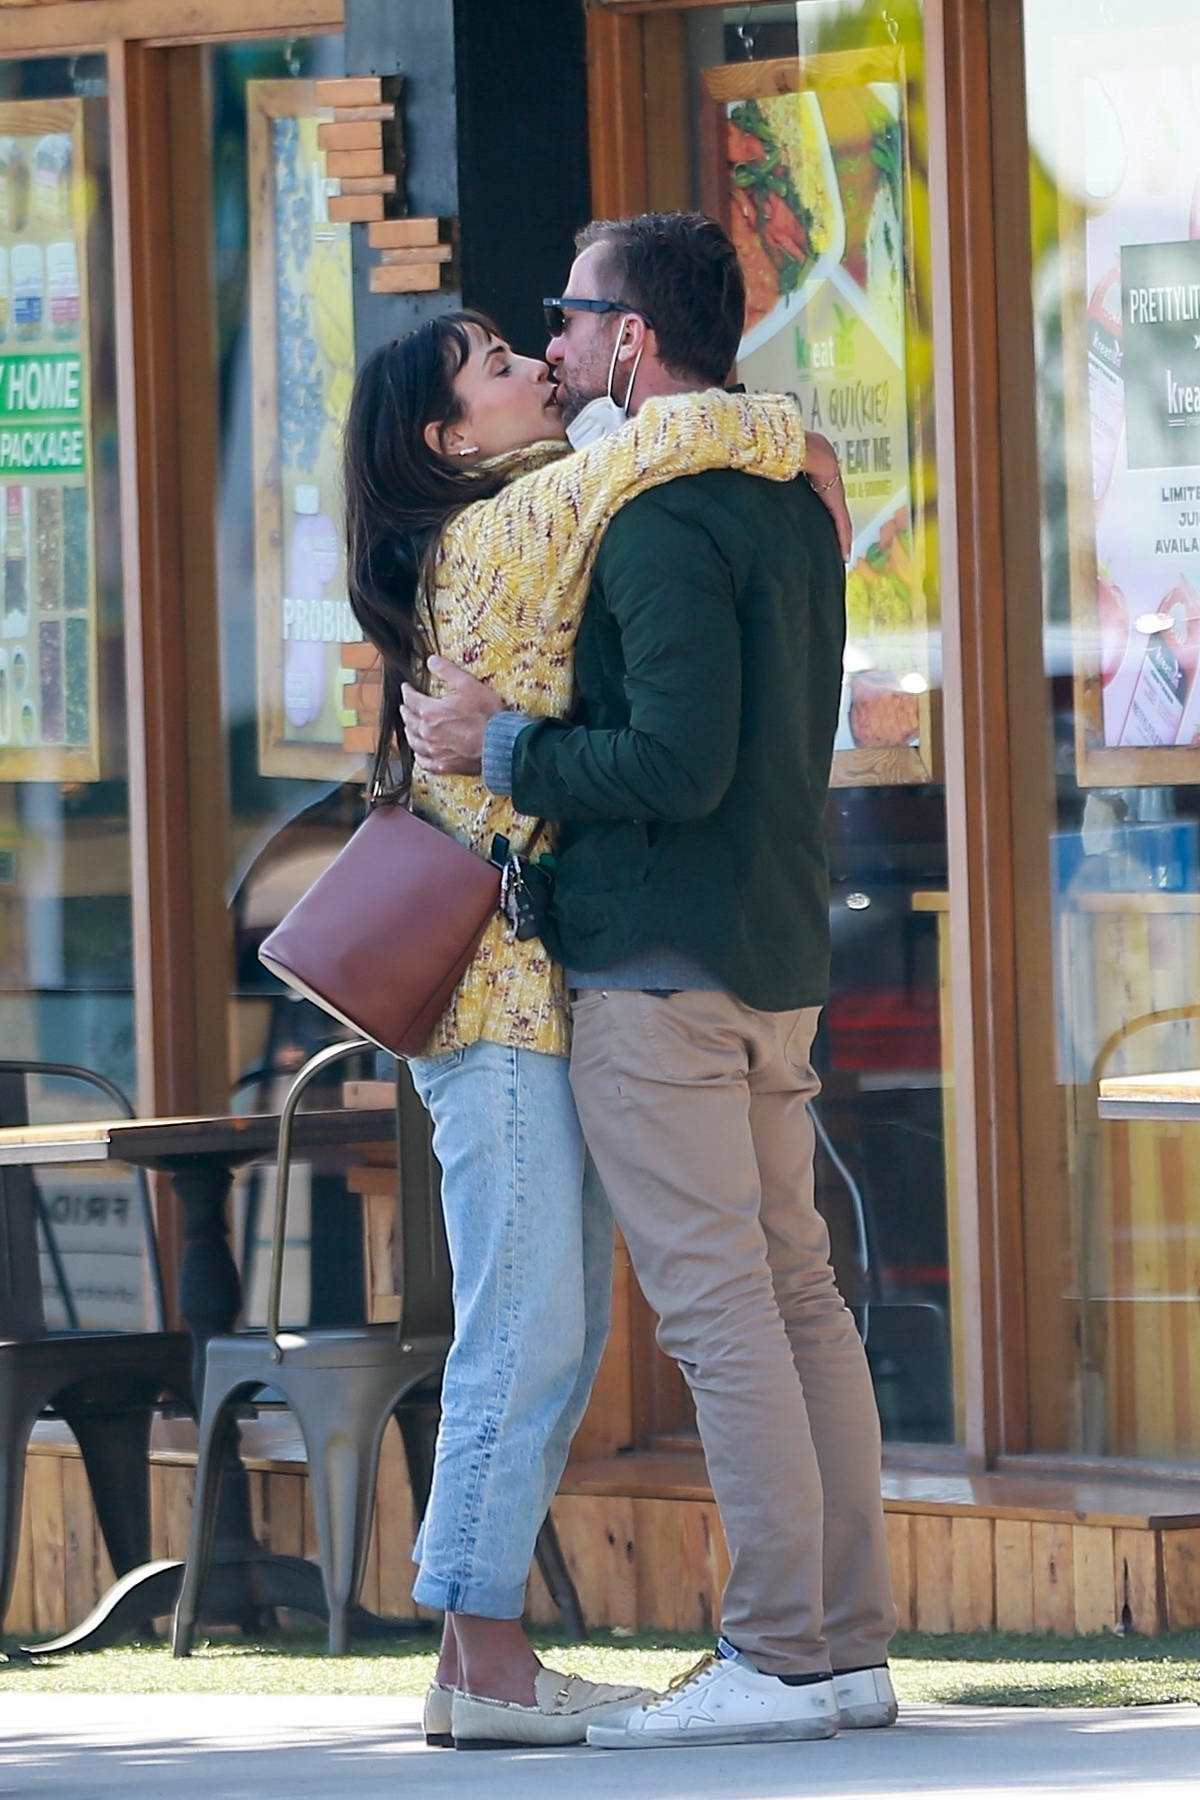 Jordana Brewster and boyfriend Mason Morfit share some PDA while out in Brentwood, California